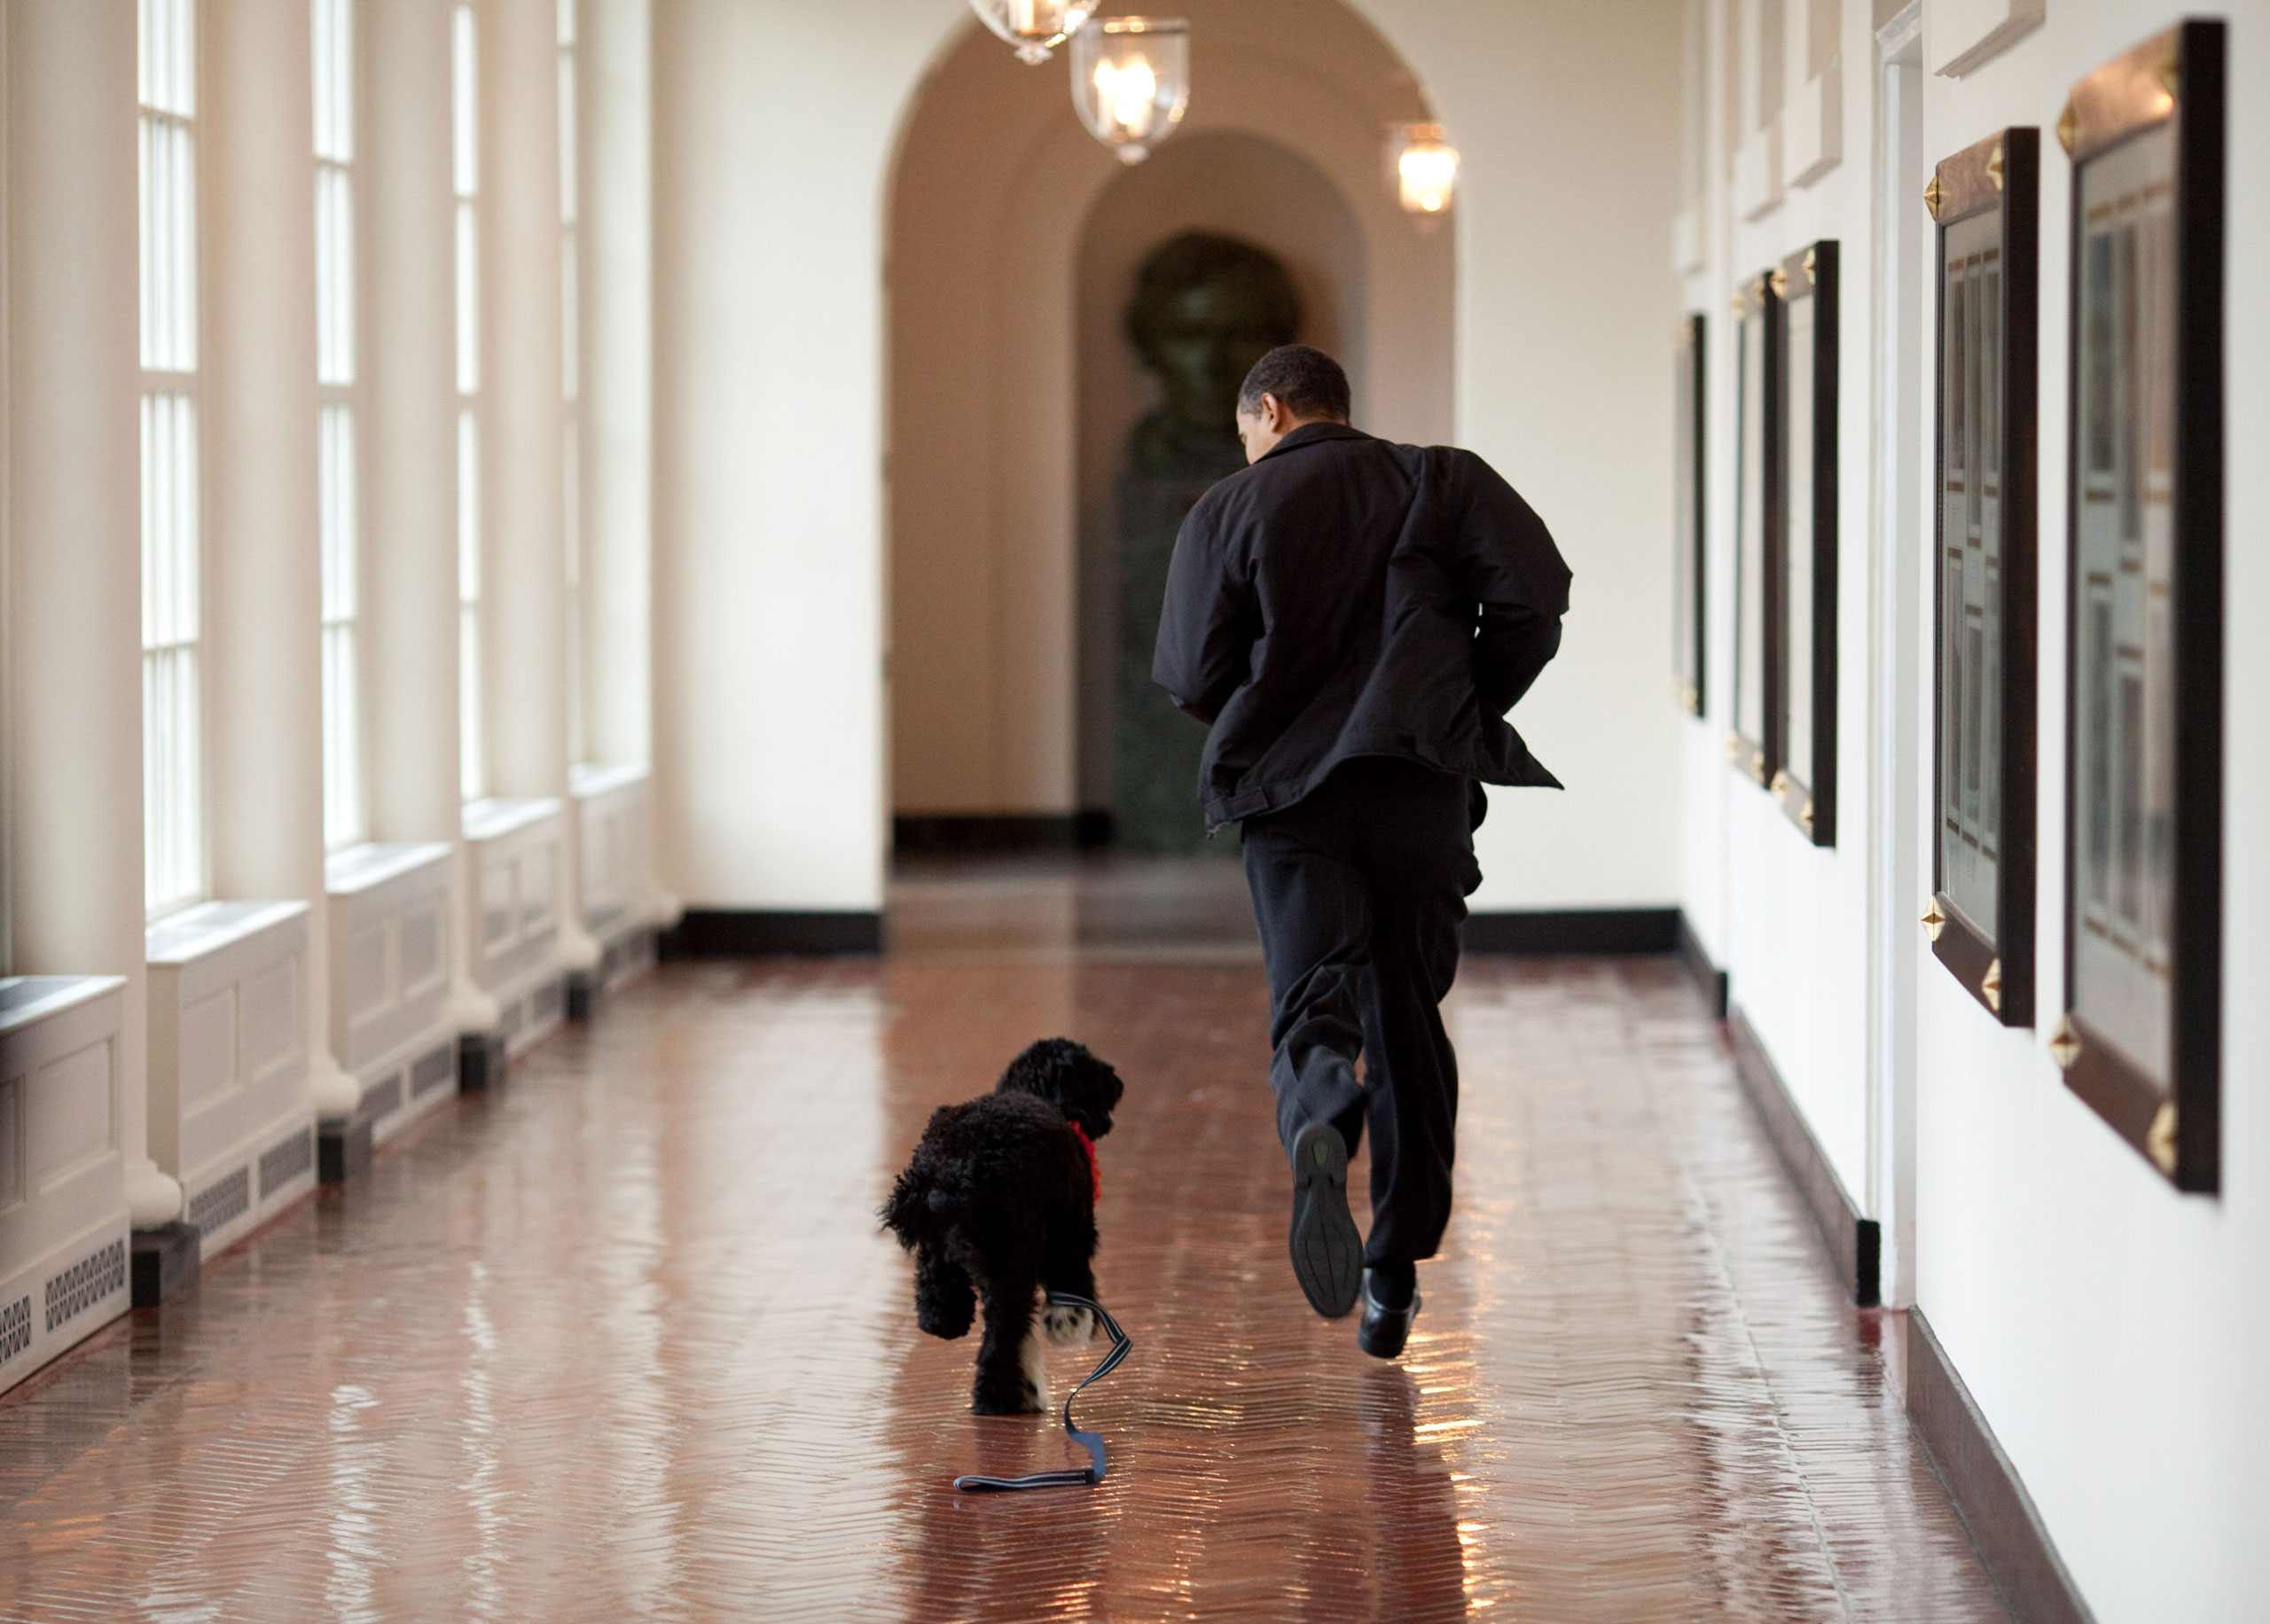 """""""The Obama family was introduced to a prospective family dog at a secret greet on a Sunday. After spending about an hour with him, the family decided he was the one. Here, the dog ran alongside the President in an East Wing hallway. The dog returned to his trainer while the Obamas embarked on their first international trip. I had to keep these photos secret until a few weeks later, when the dog was brought 'home' to the White House and introduced to the world as Bo,""""                               March 15, 2009."""